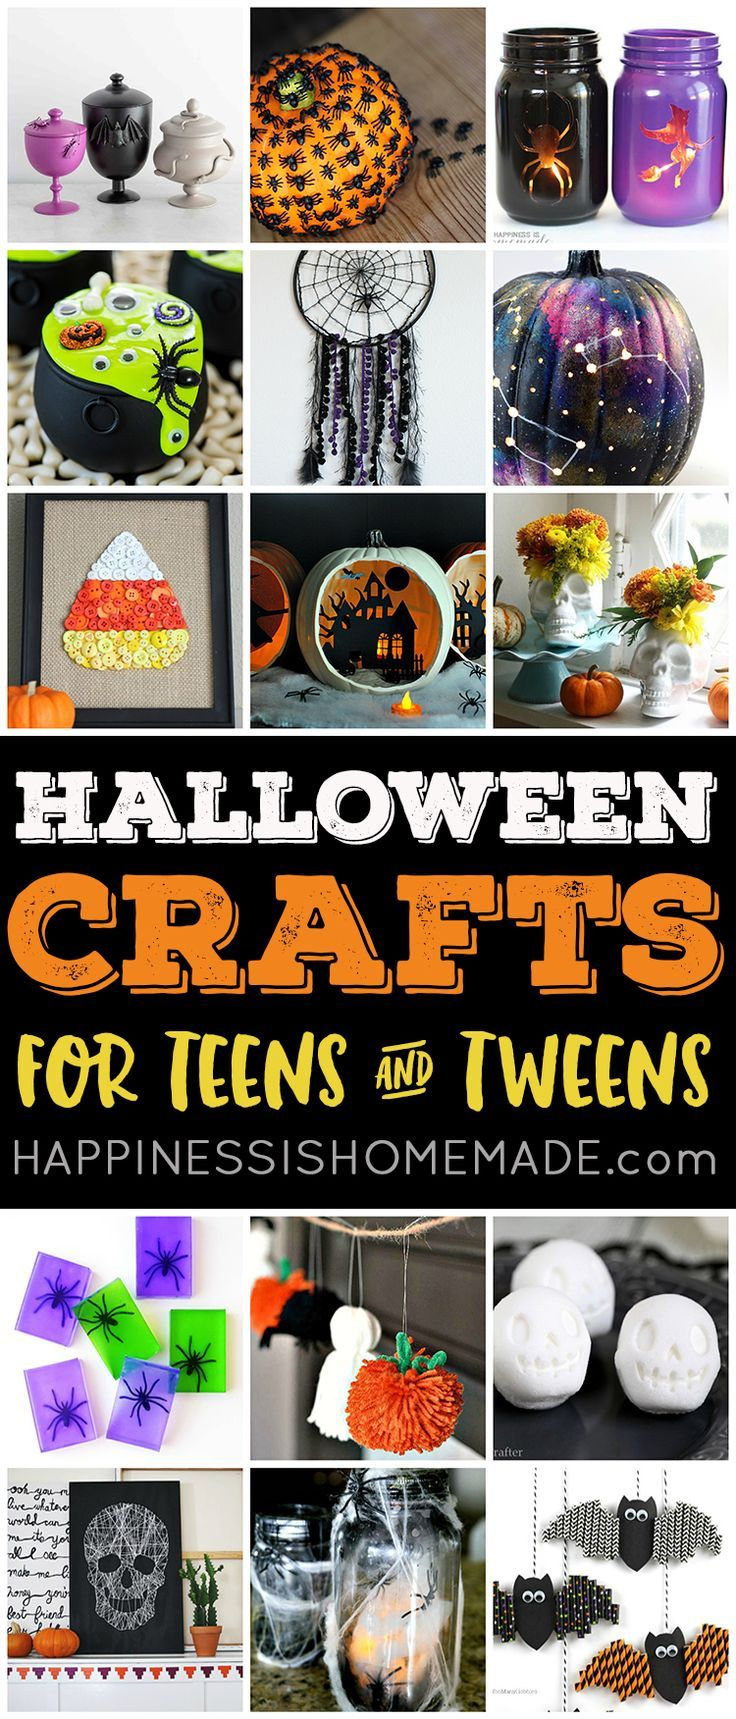 3 Easy Diy Storage Ideas For Small Kitchen: Best 25+ Easy Halloween Crafts Ideas On Pinterest